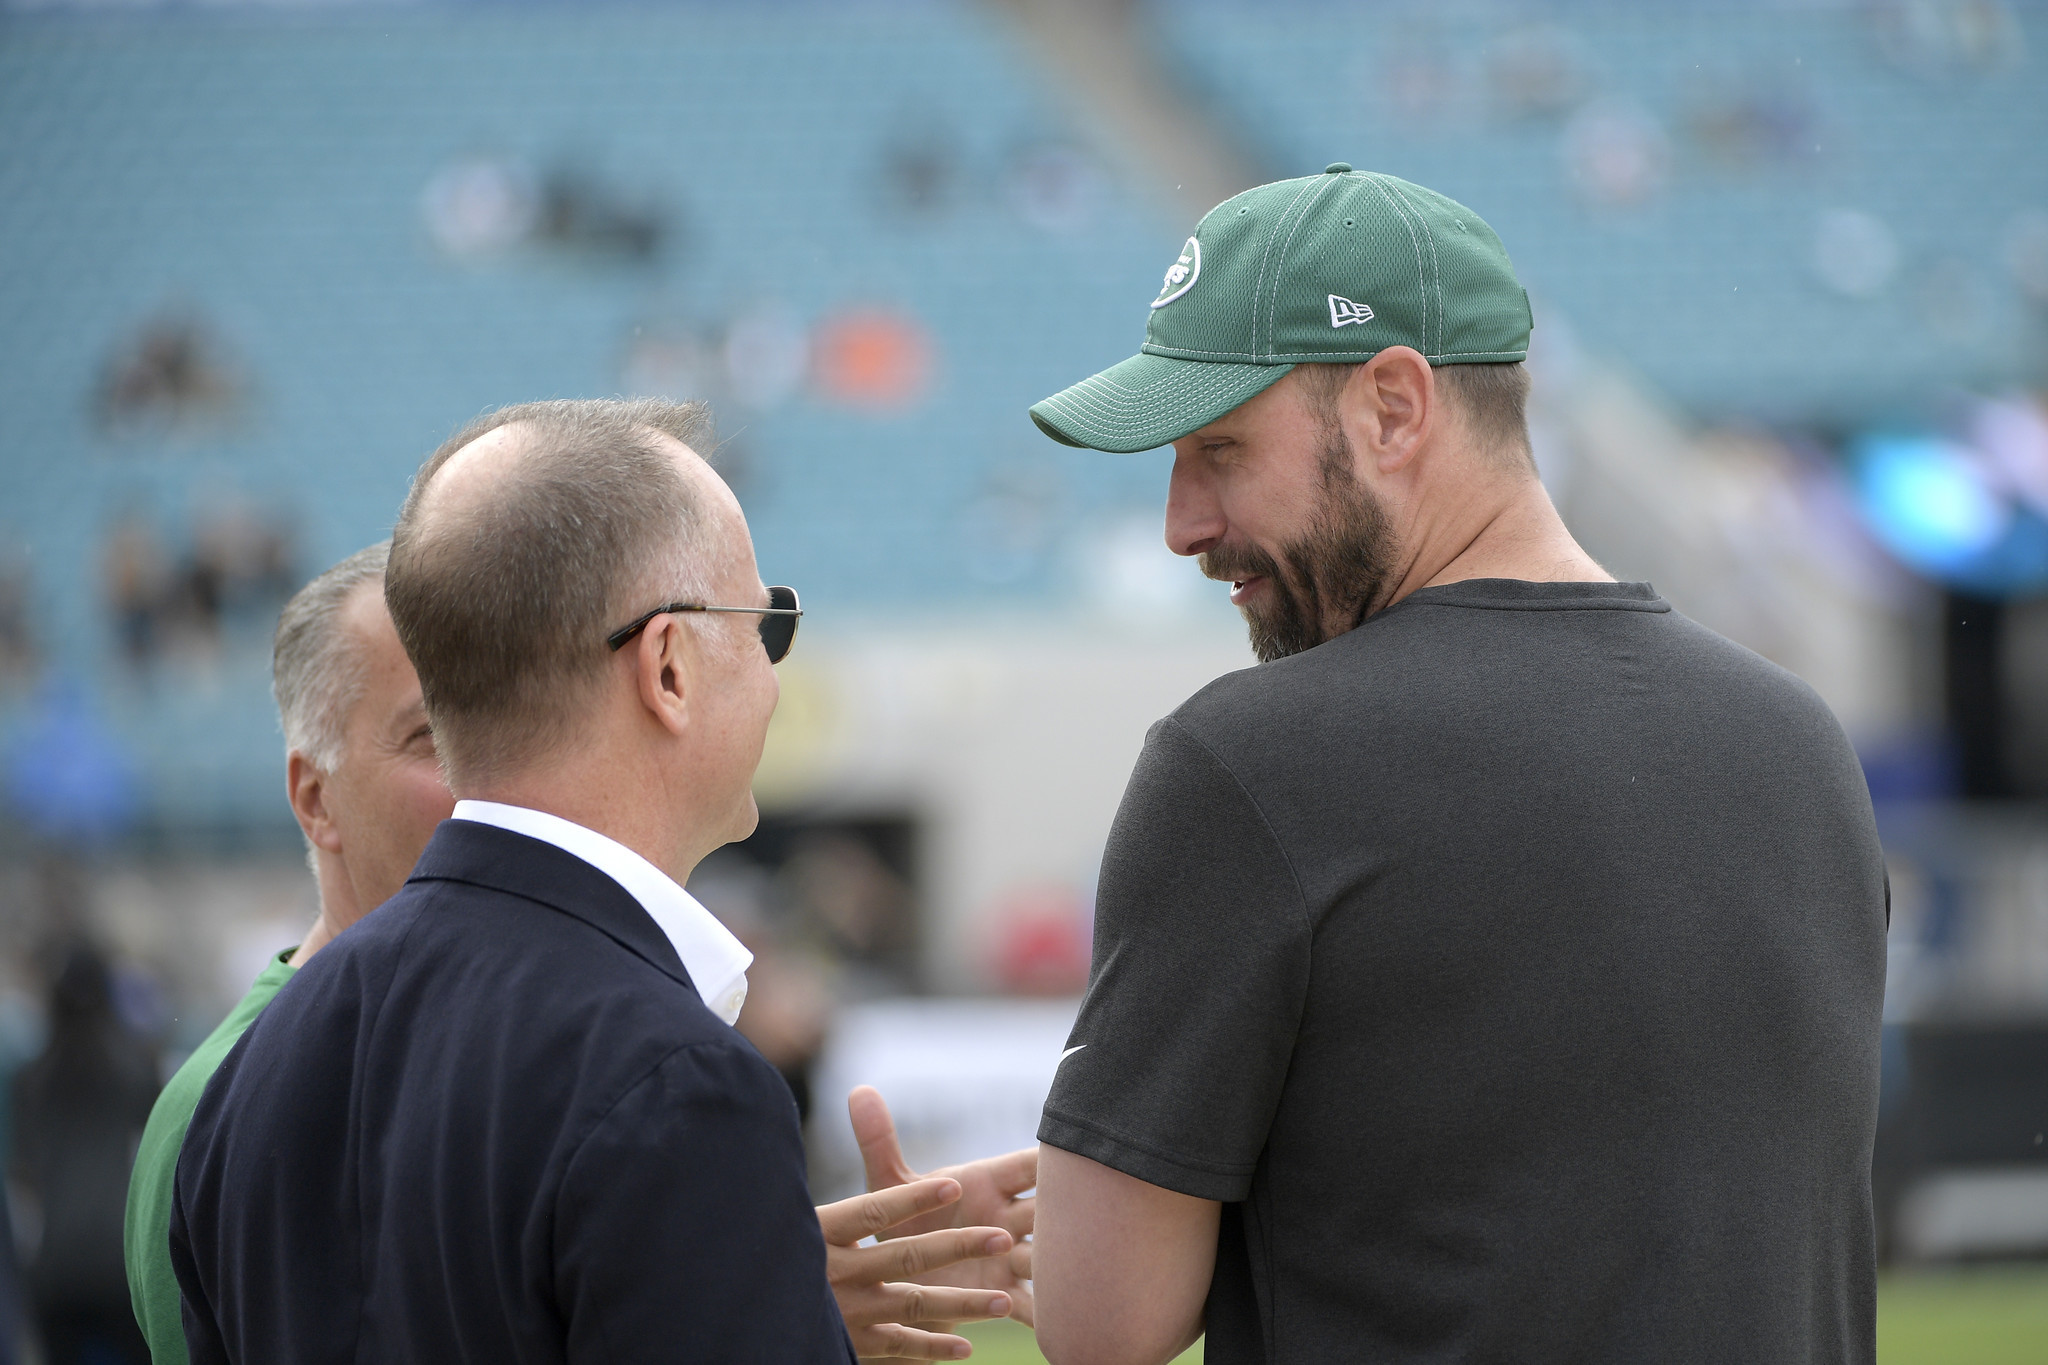 Jets Mailbag: Should Christopher Johnson have a playoff mandate for Adam Gase in 2020?